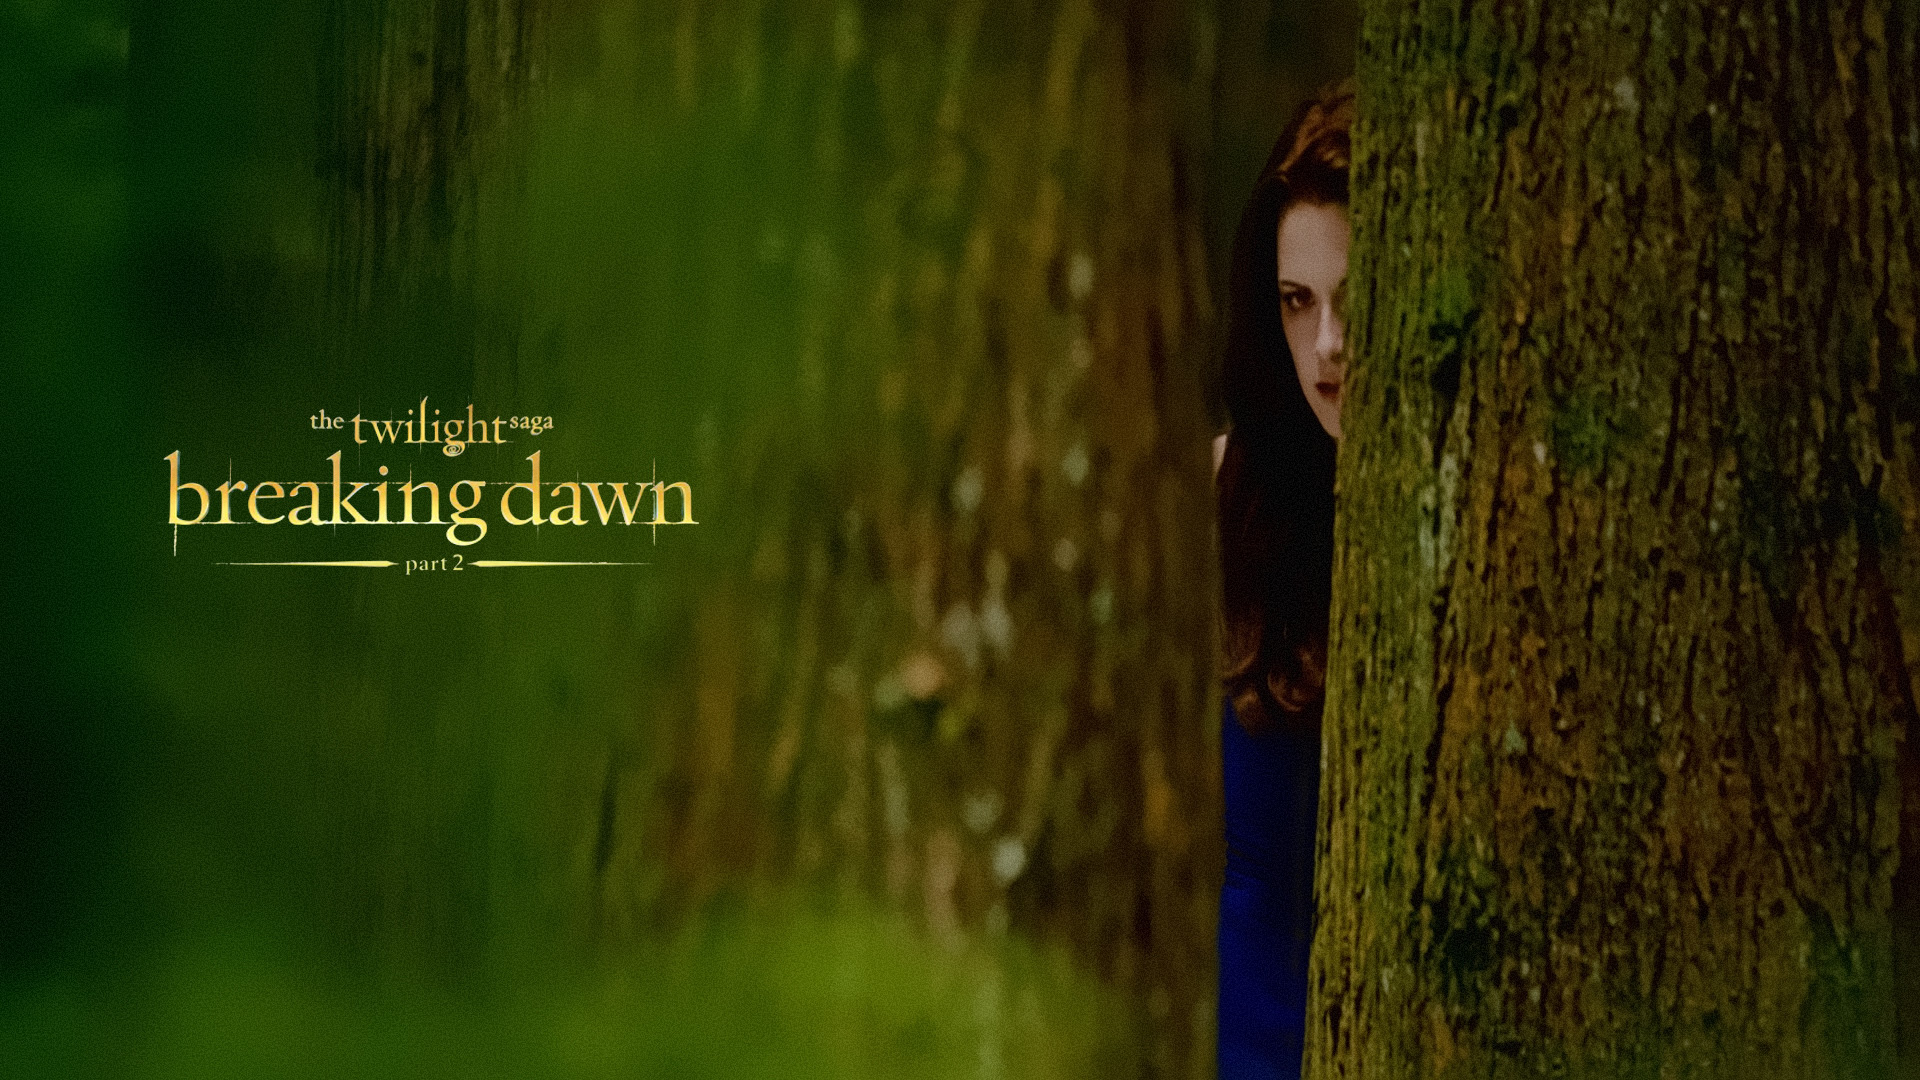 The Twilight Saga Breaking Dawn Part 2 Wallpapers 4 The Movie Blog